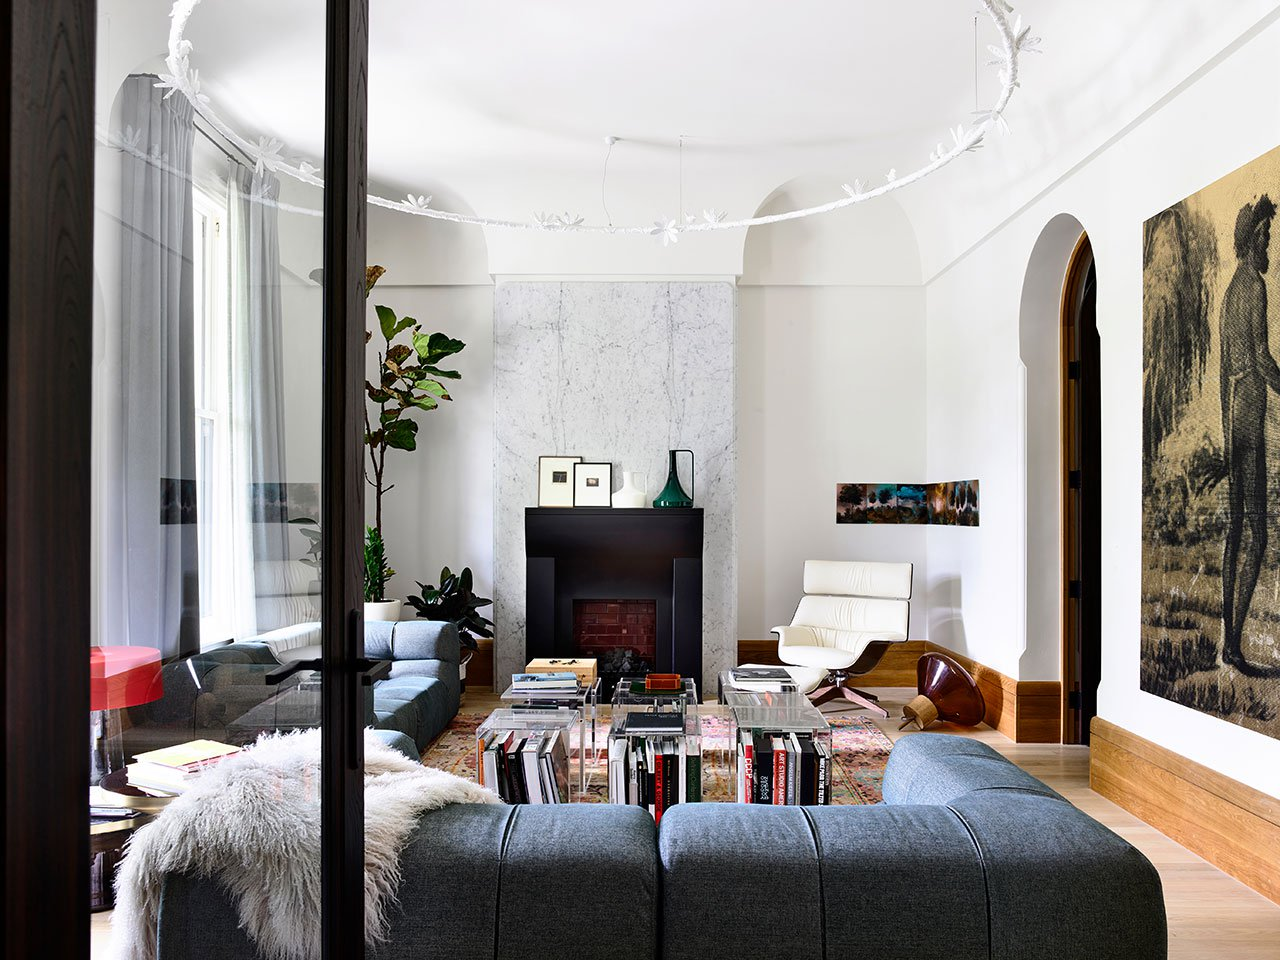 The living room shows off gorgeous art, stylish furniture, a unique hanging piece and a stylish faux fireplace